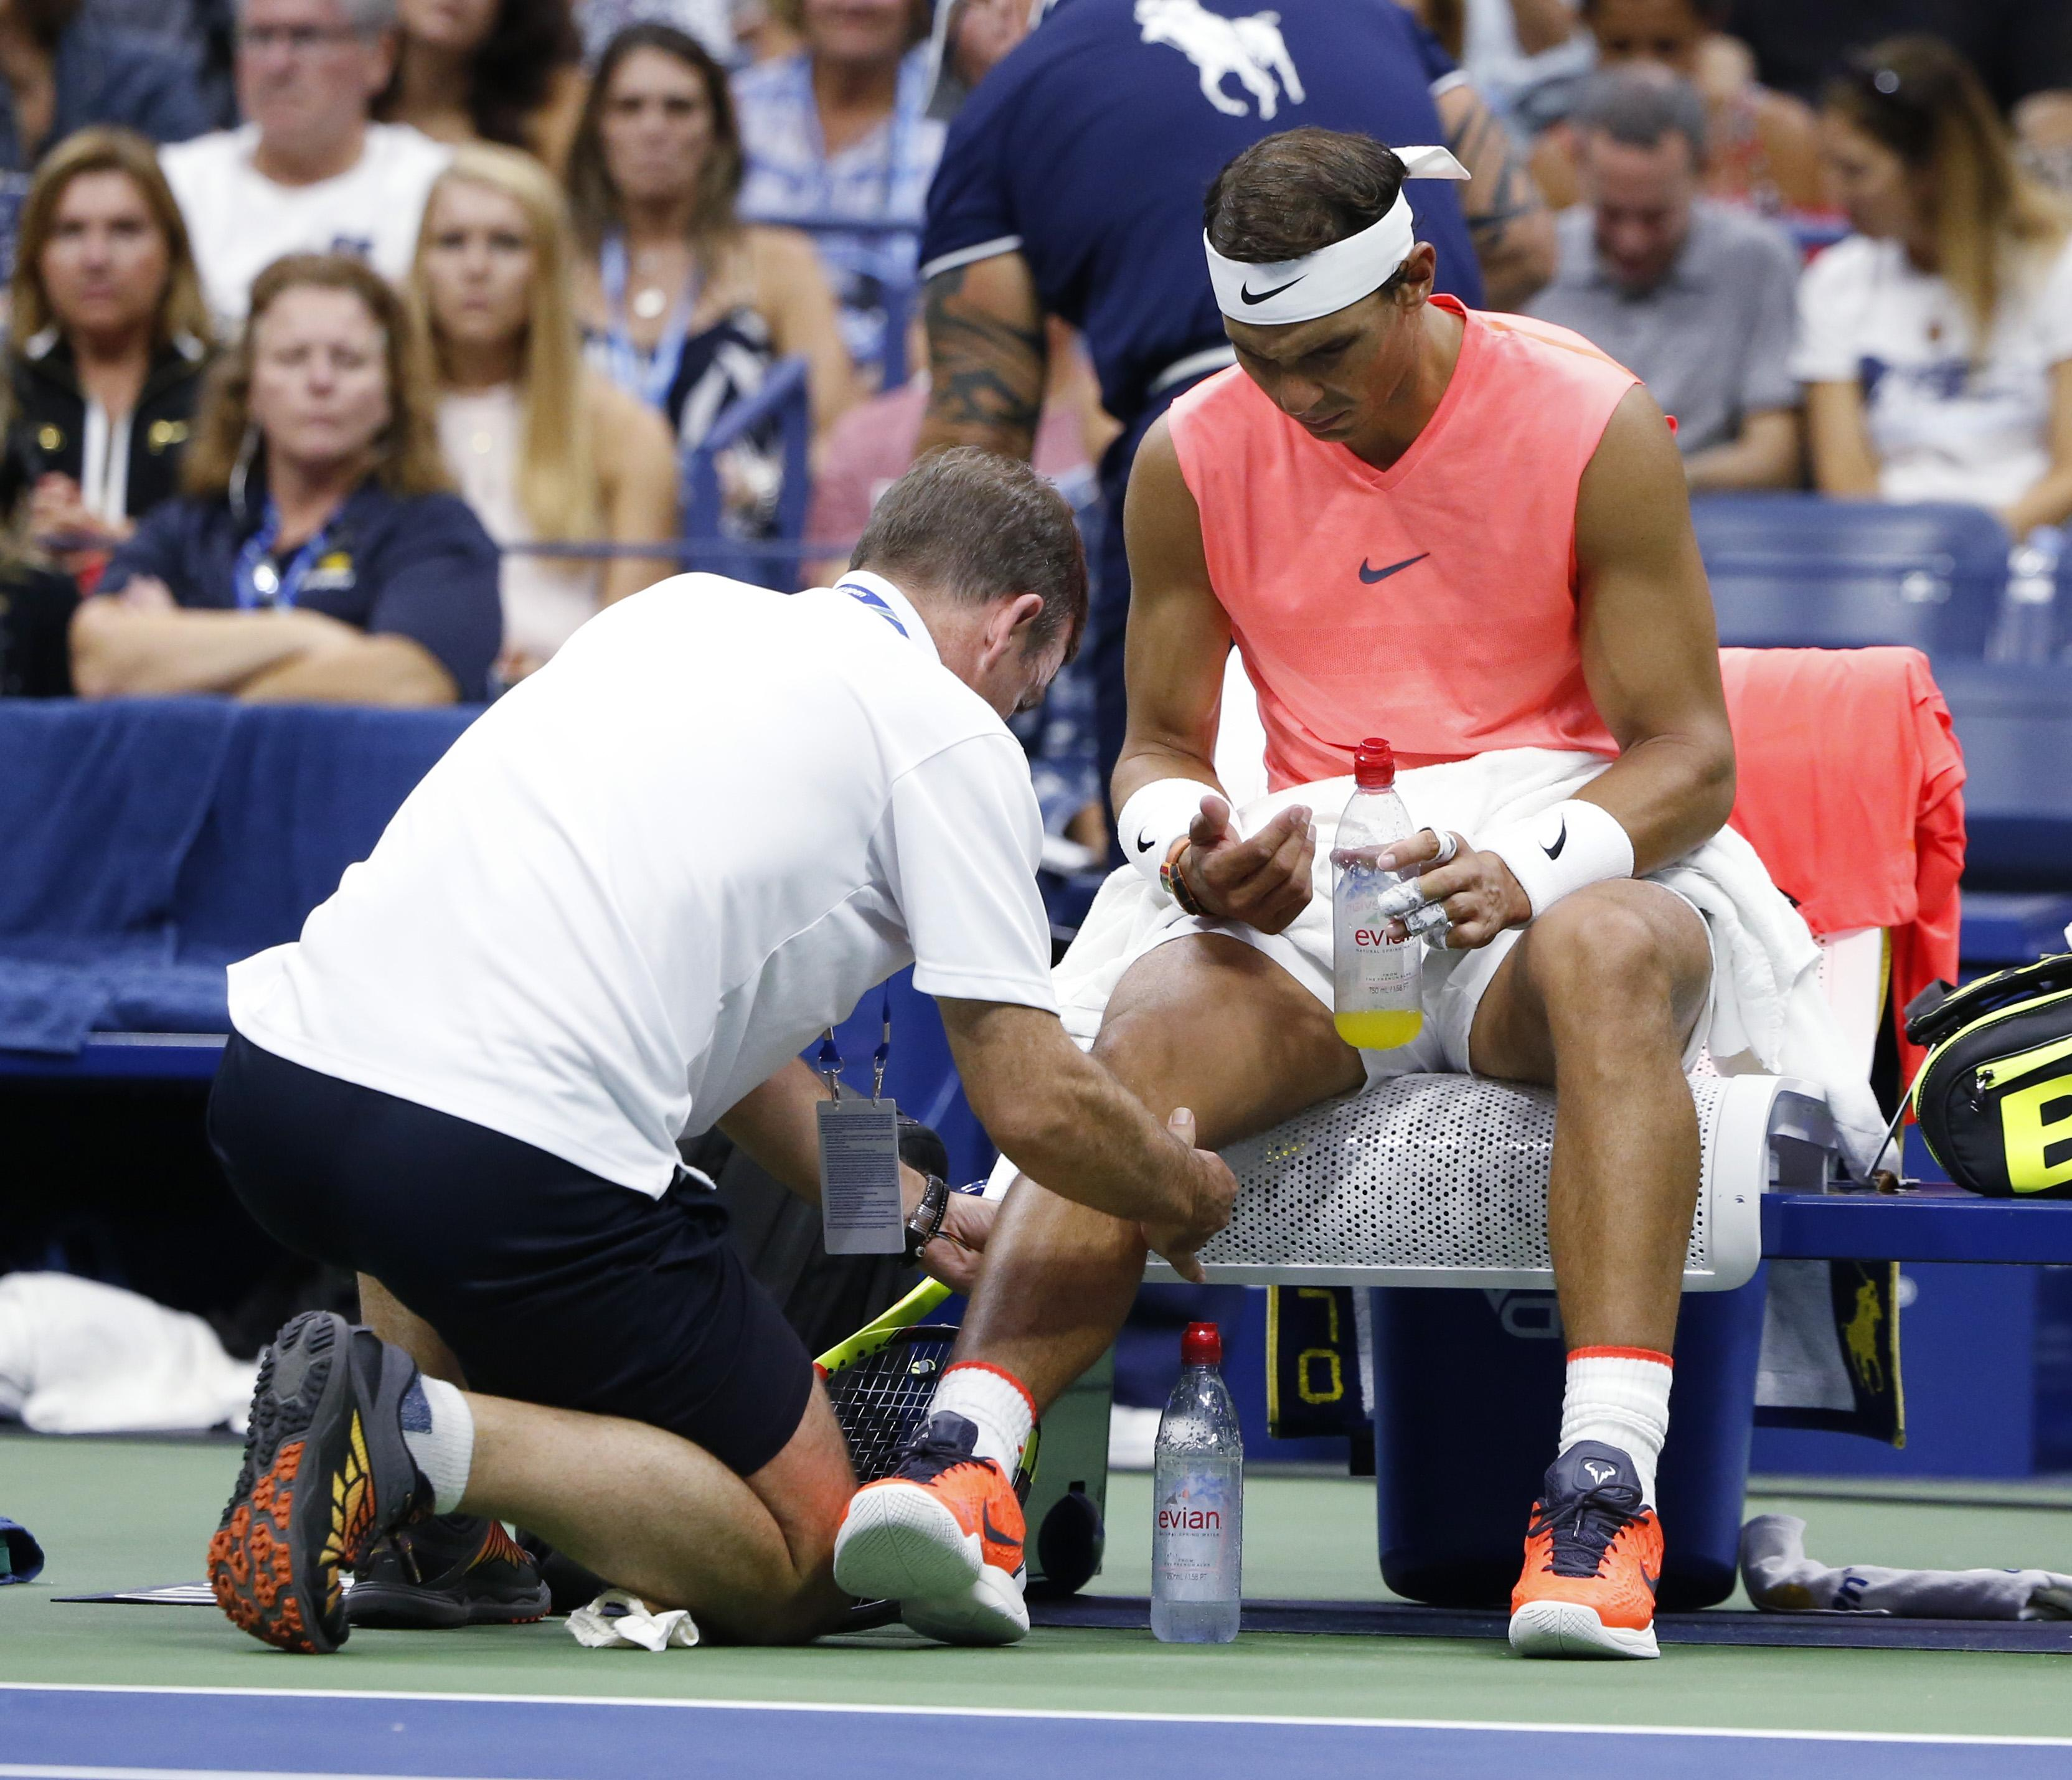 Nadal received treatment on his right knee in the early stages and had it strapped up which appeared to help his movement